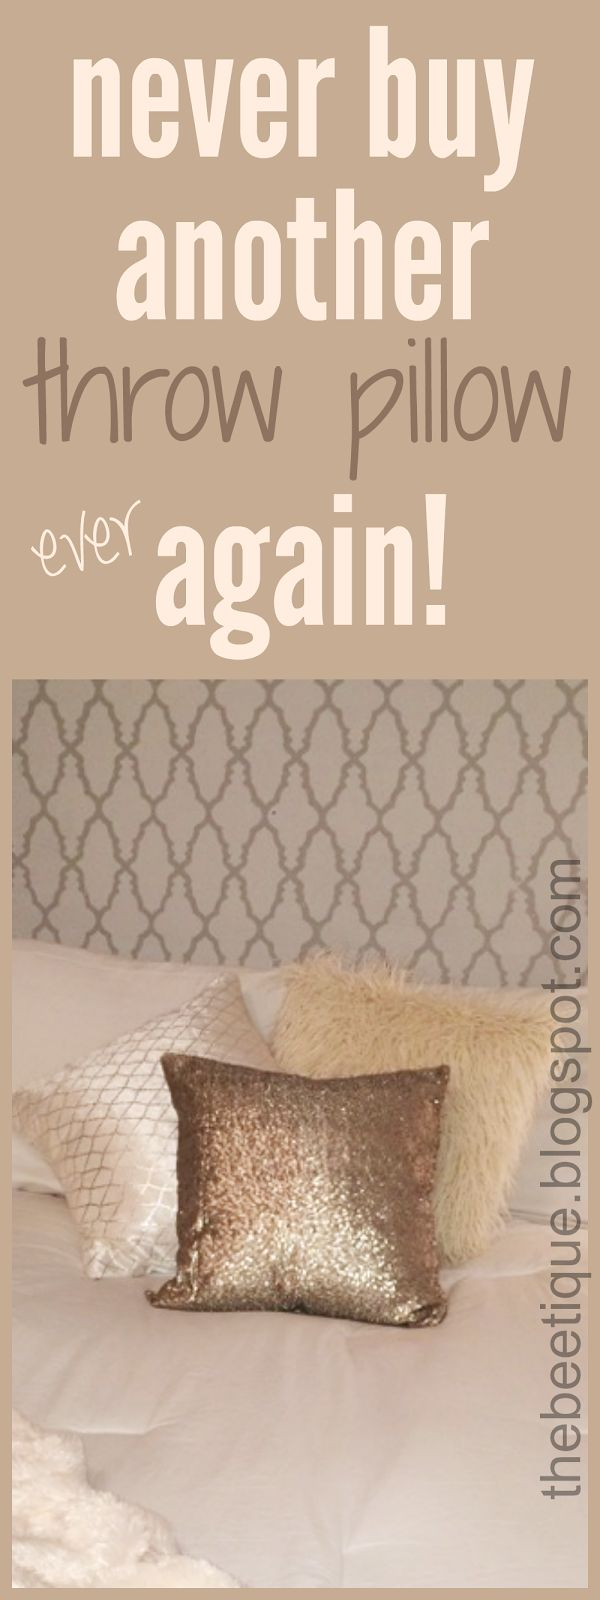 Whyyy are throw pillows so expensive? Never buy another throw pillow again - find out how I got all 3 of these throw pillows for under $10 each. Affordable faux fur and sequin throw pillows for your shabby chic diva bedroom <3 via thebeetique.blogspot.com